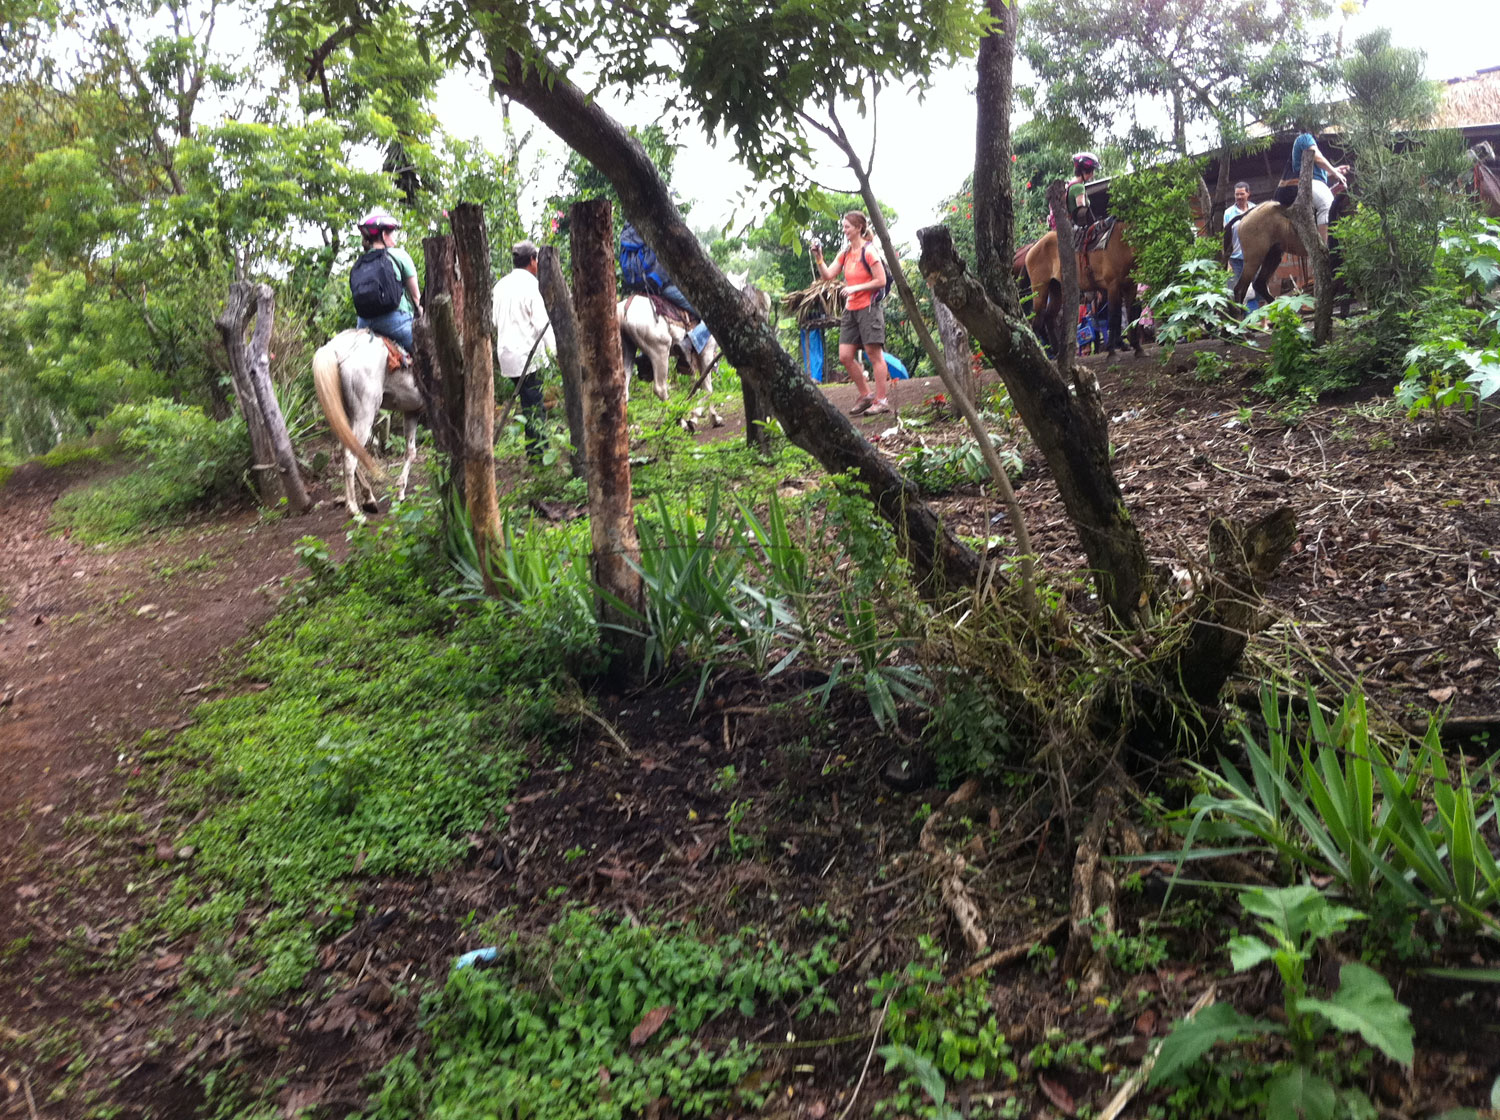 Arriving at the upper houses of the community where we had almuerzo (lunch) prepared by the members of the community.